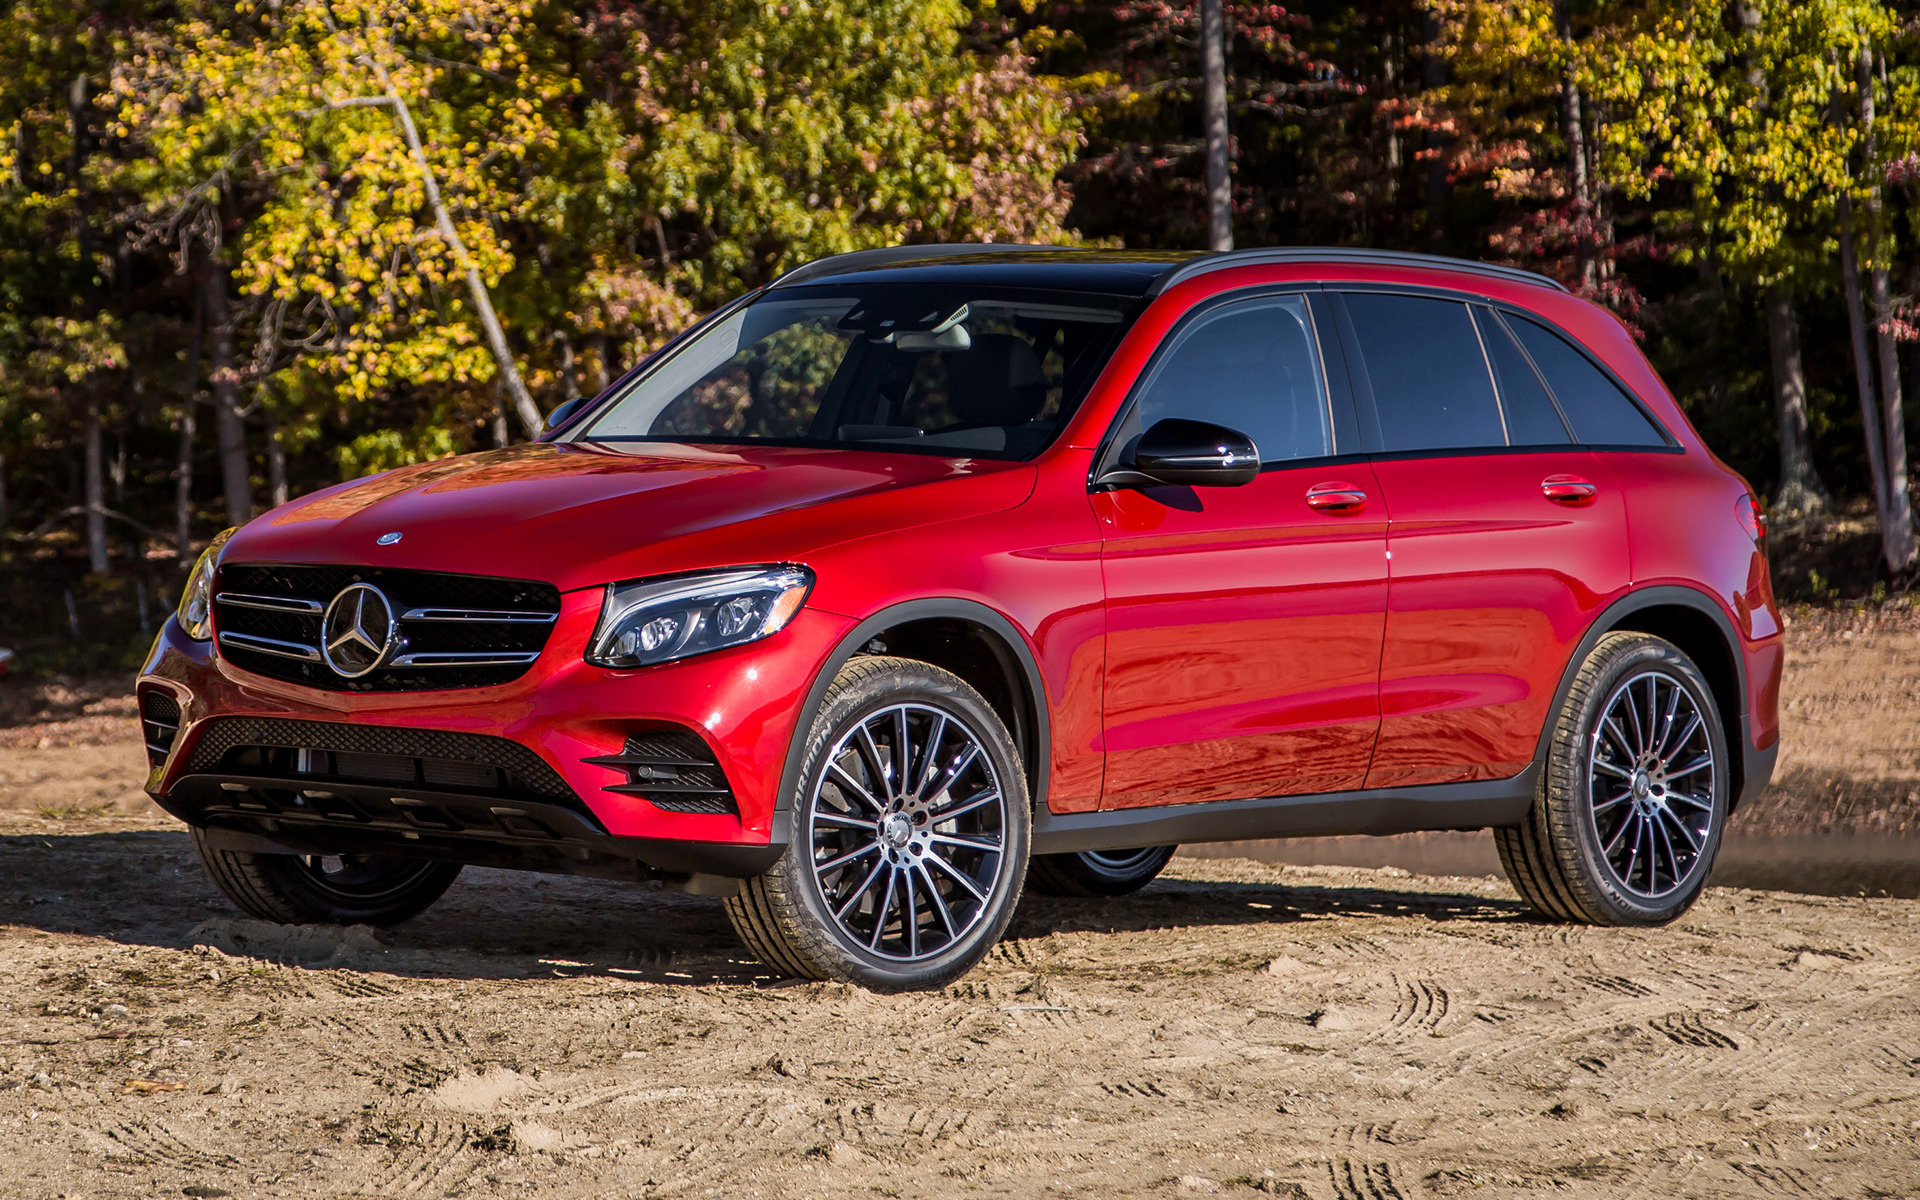 Explore the amg g 63 suv, including specifications, key features, packages and more. 2016 Mercedes-Benz GLC-Class AMG Styling (US) - Wallpapers